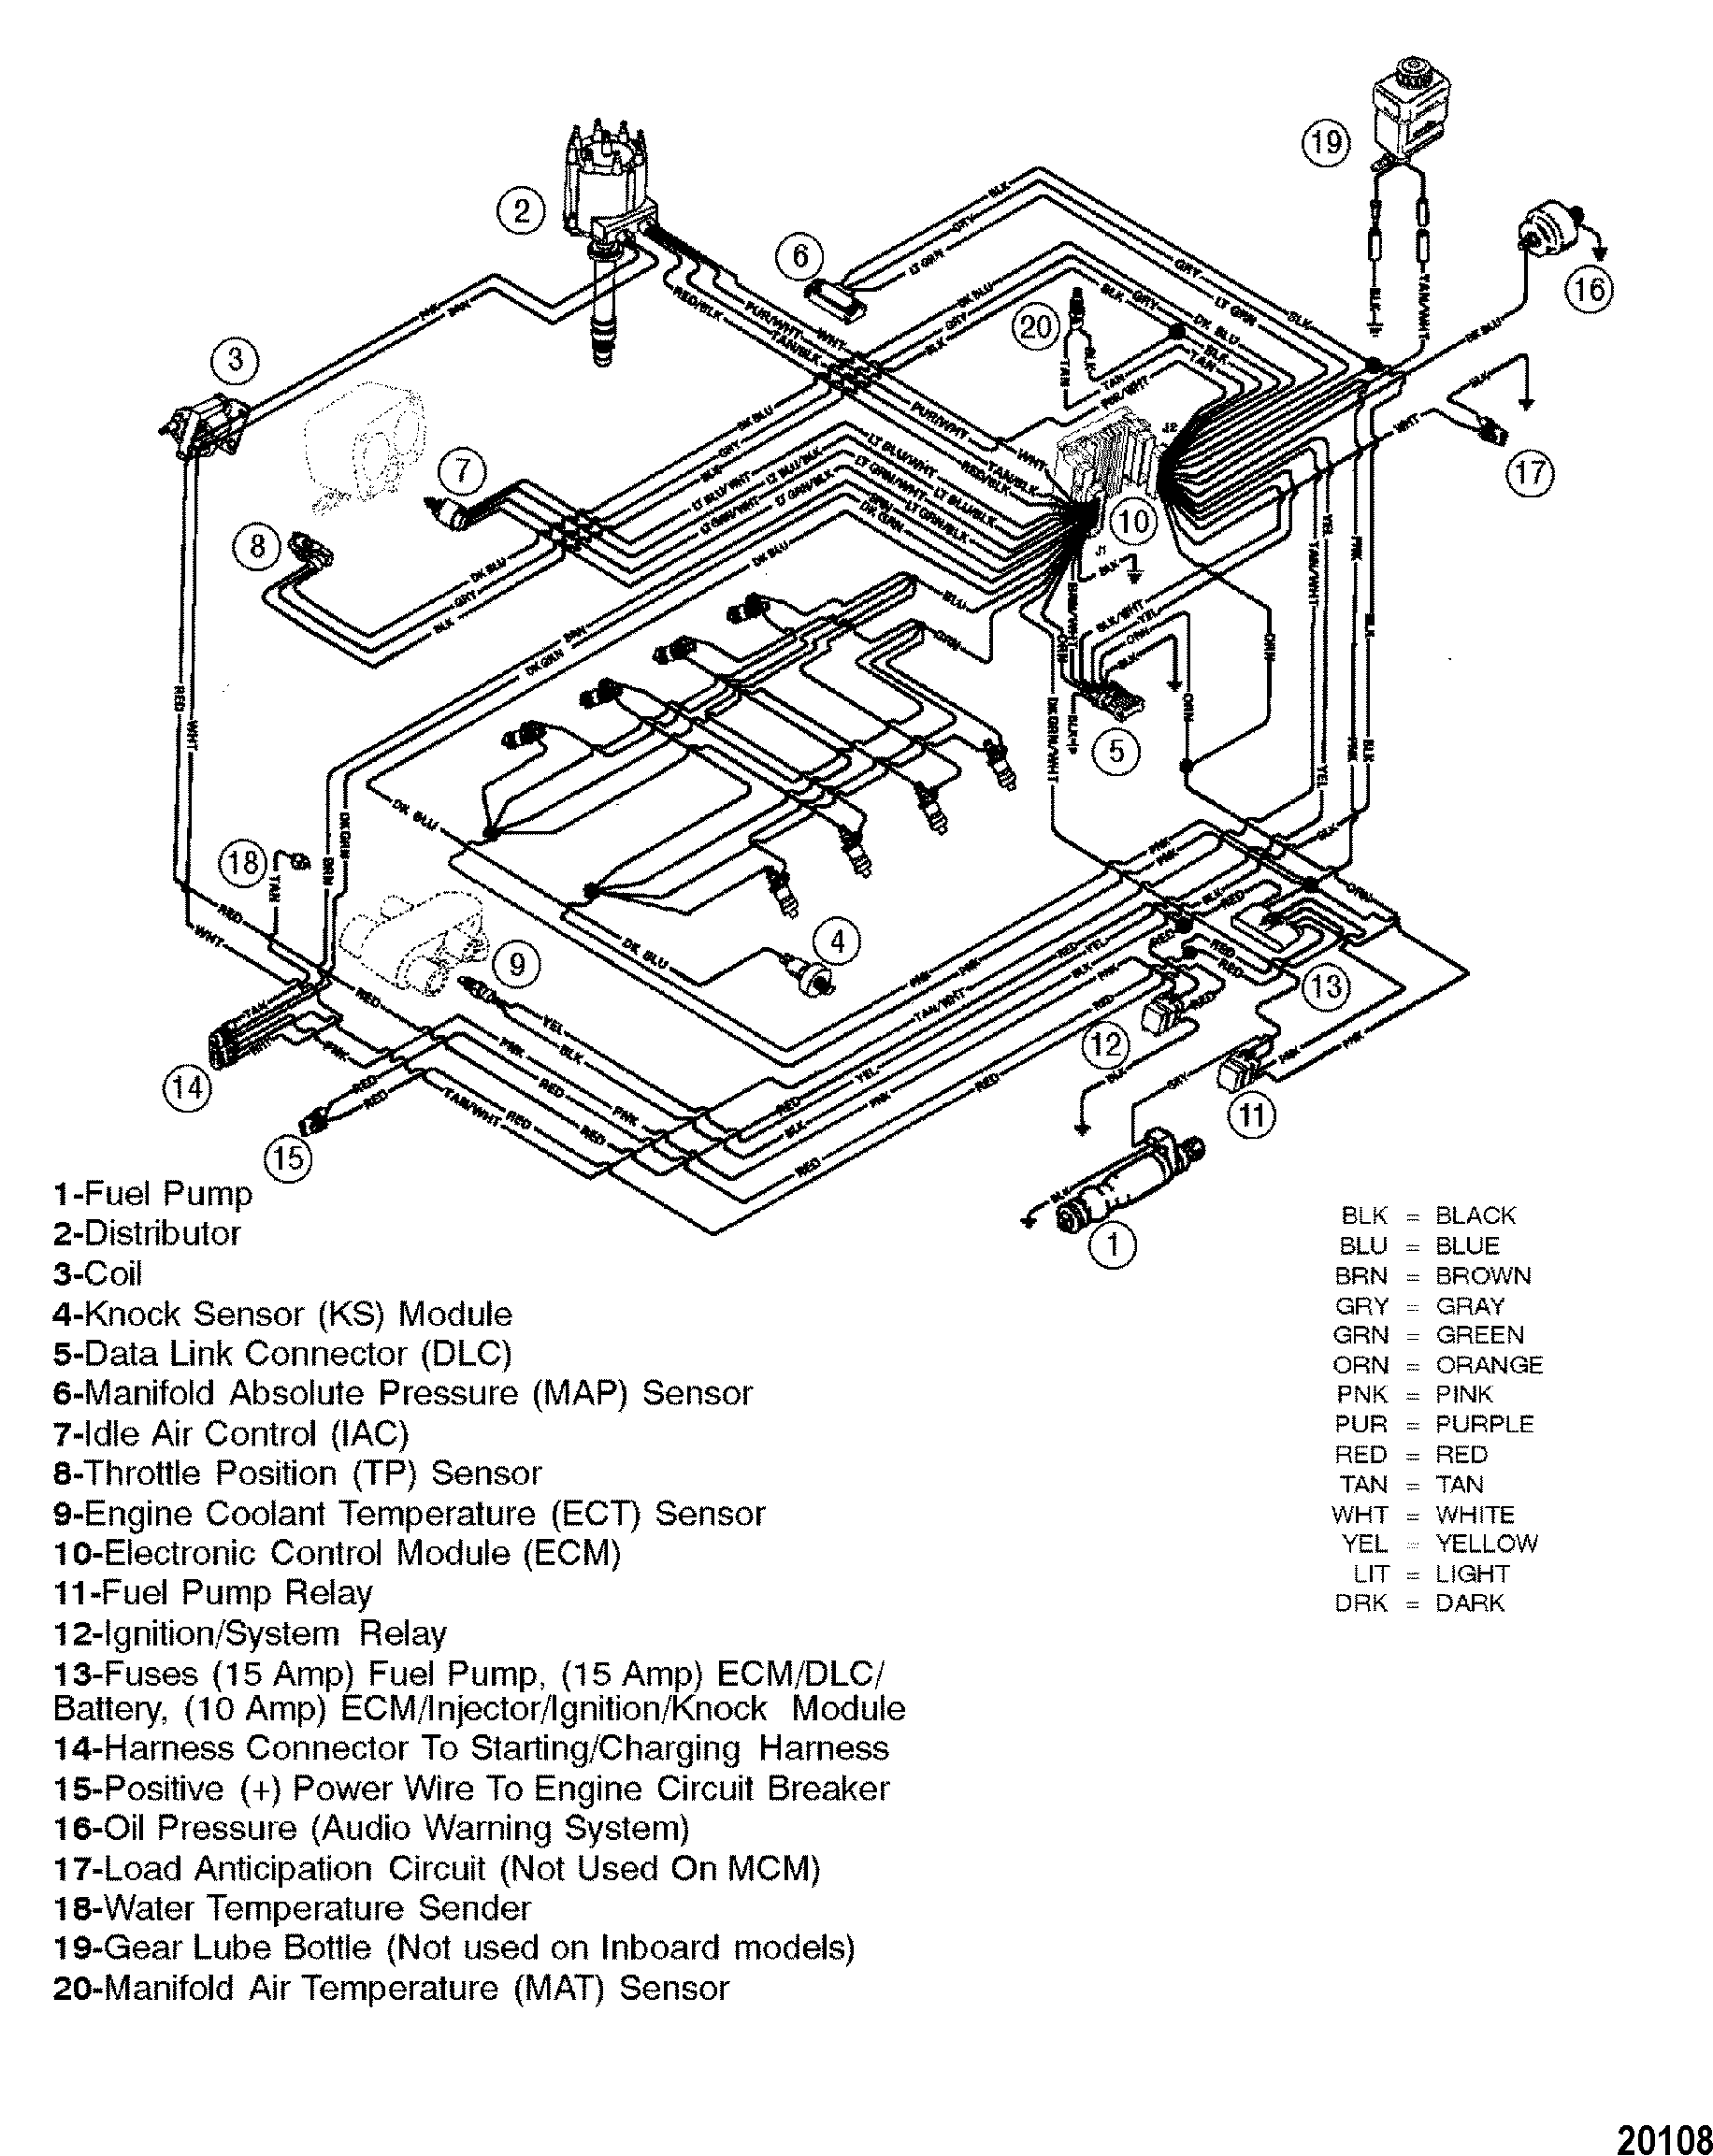 [WRG-9159] Alternator Wiring Diagram Chevy 2 Cid 1997